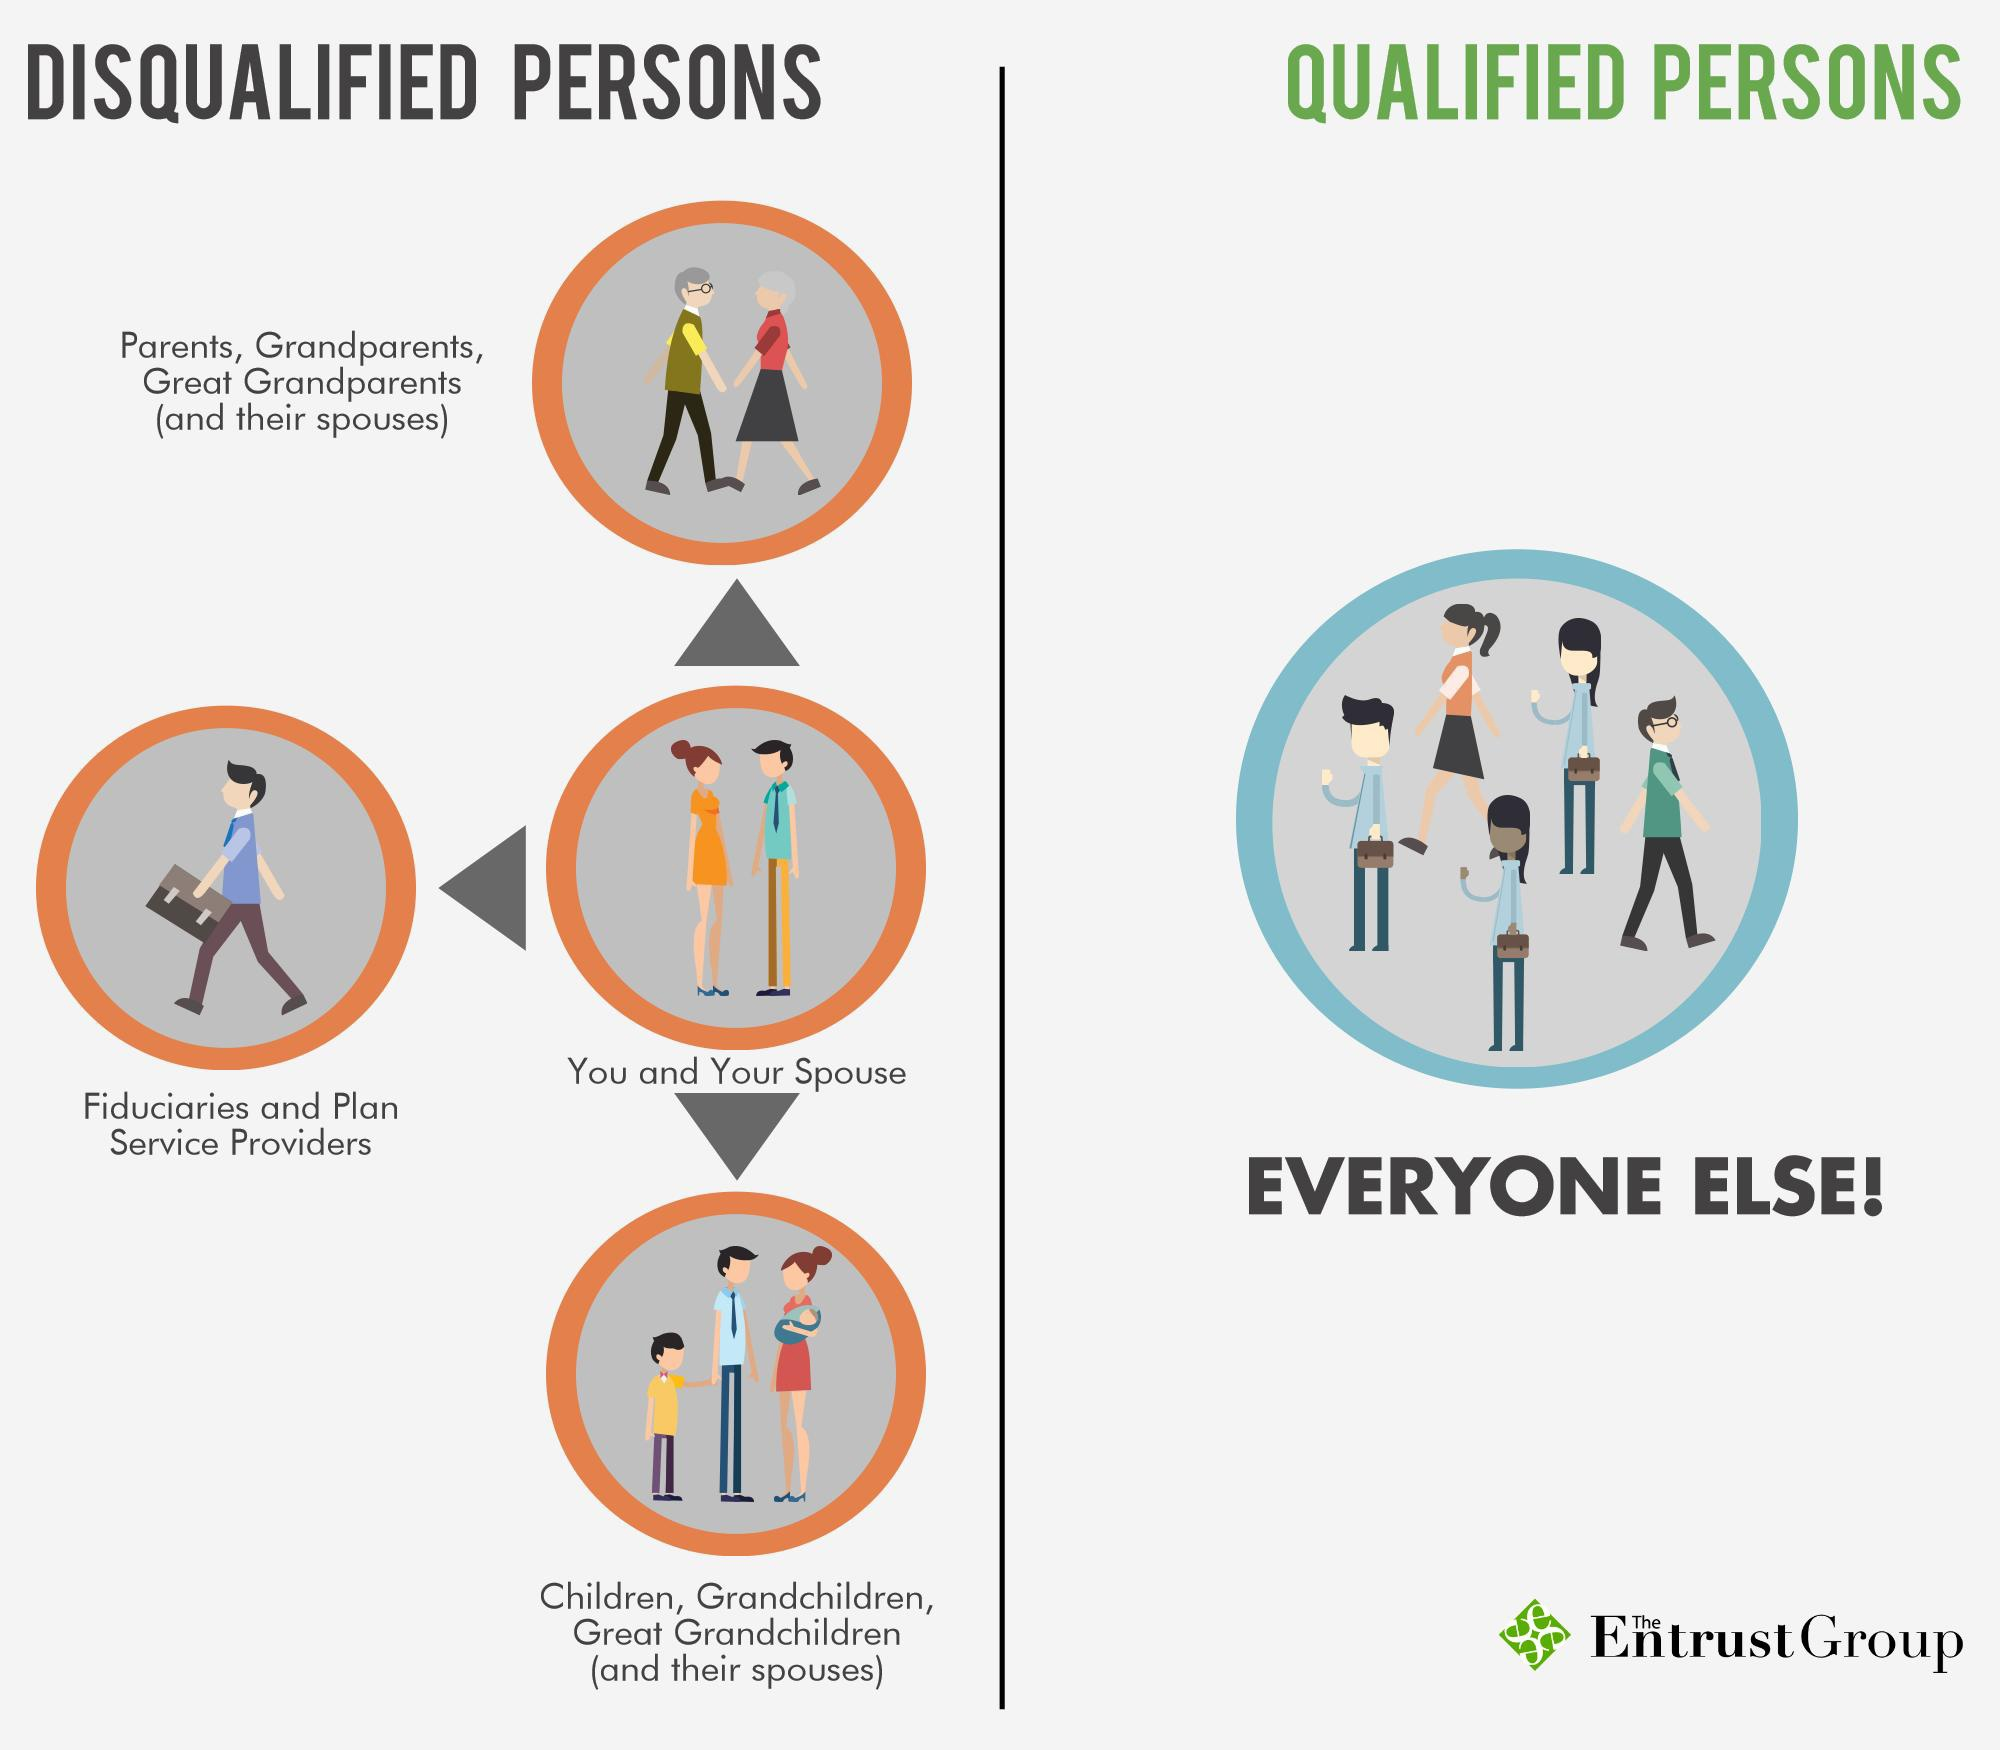 [Infographic] Self-Directed IRA FAQ - Who is a Disqualified Person?